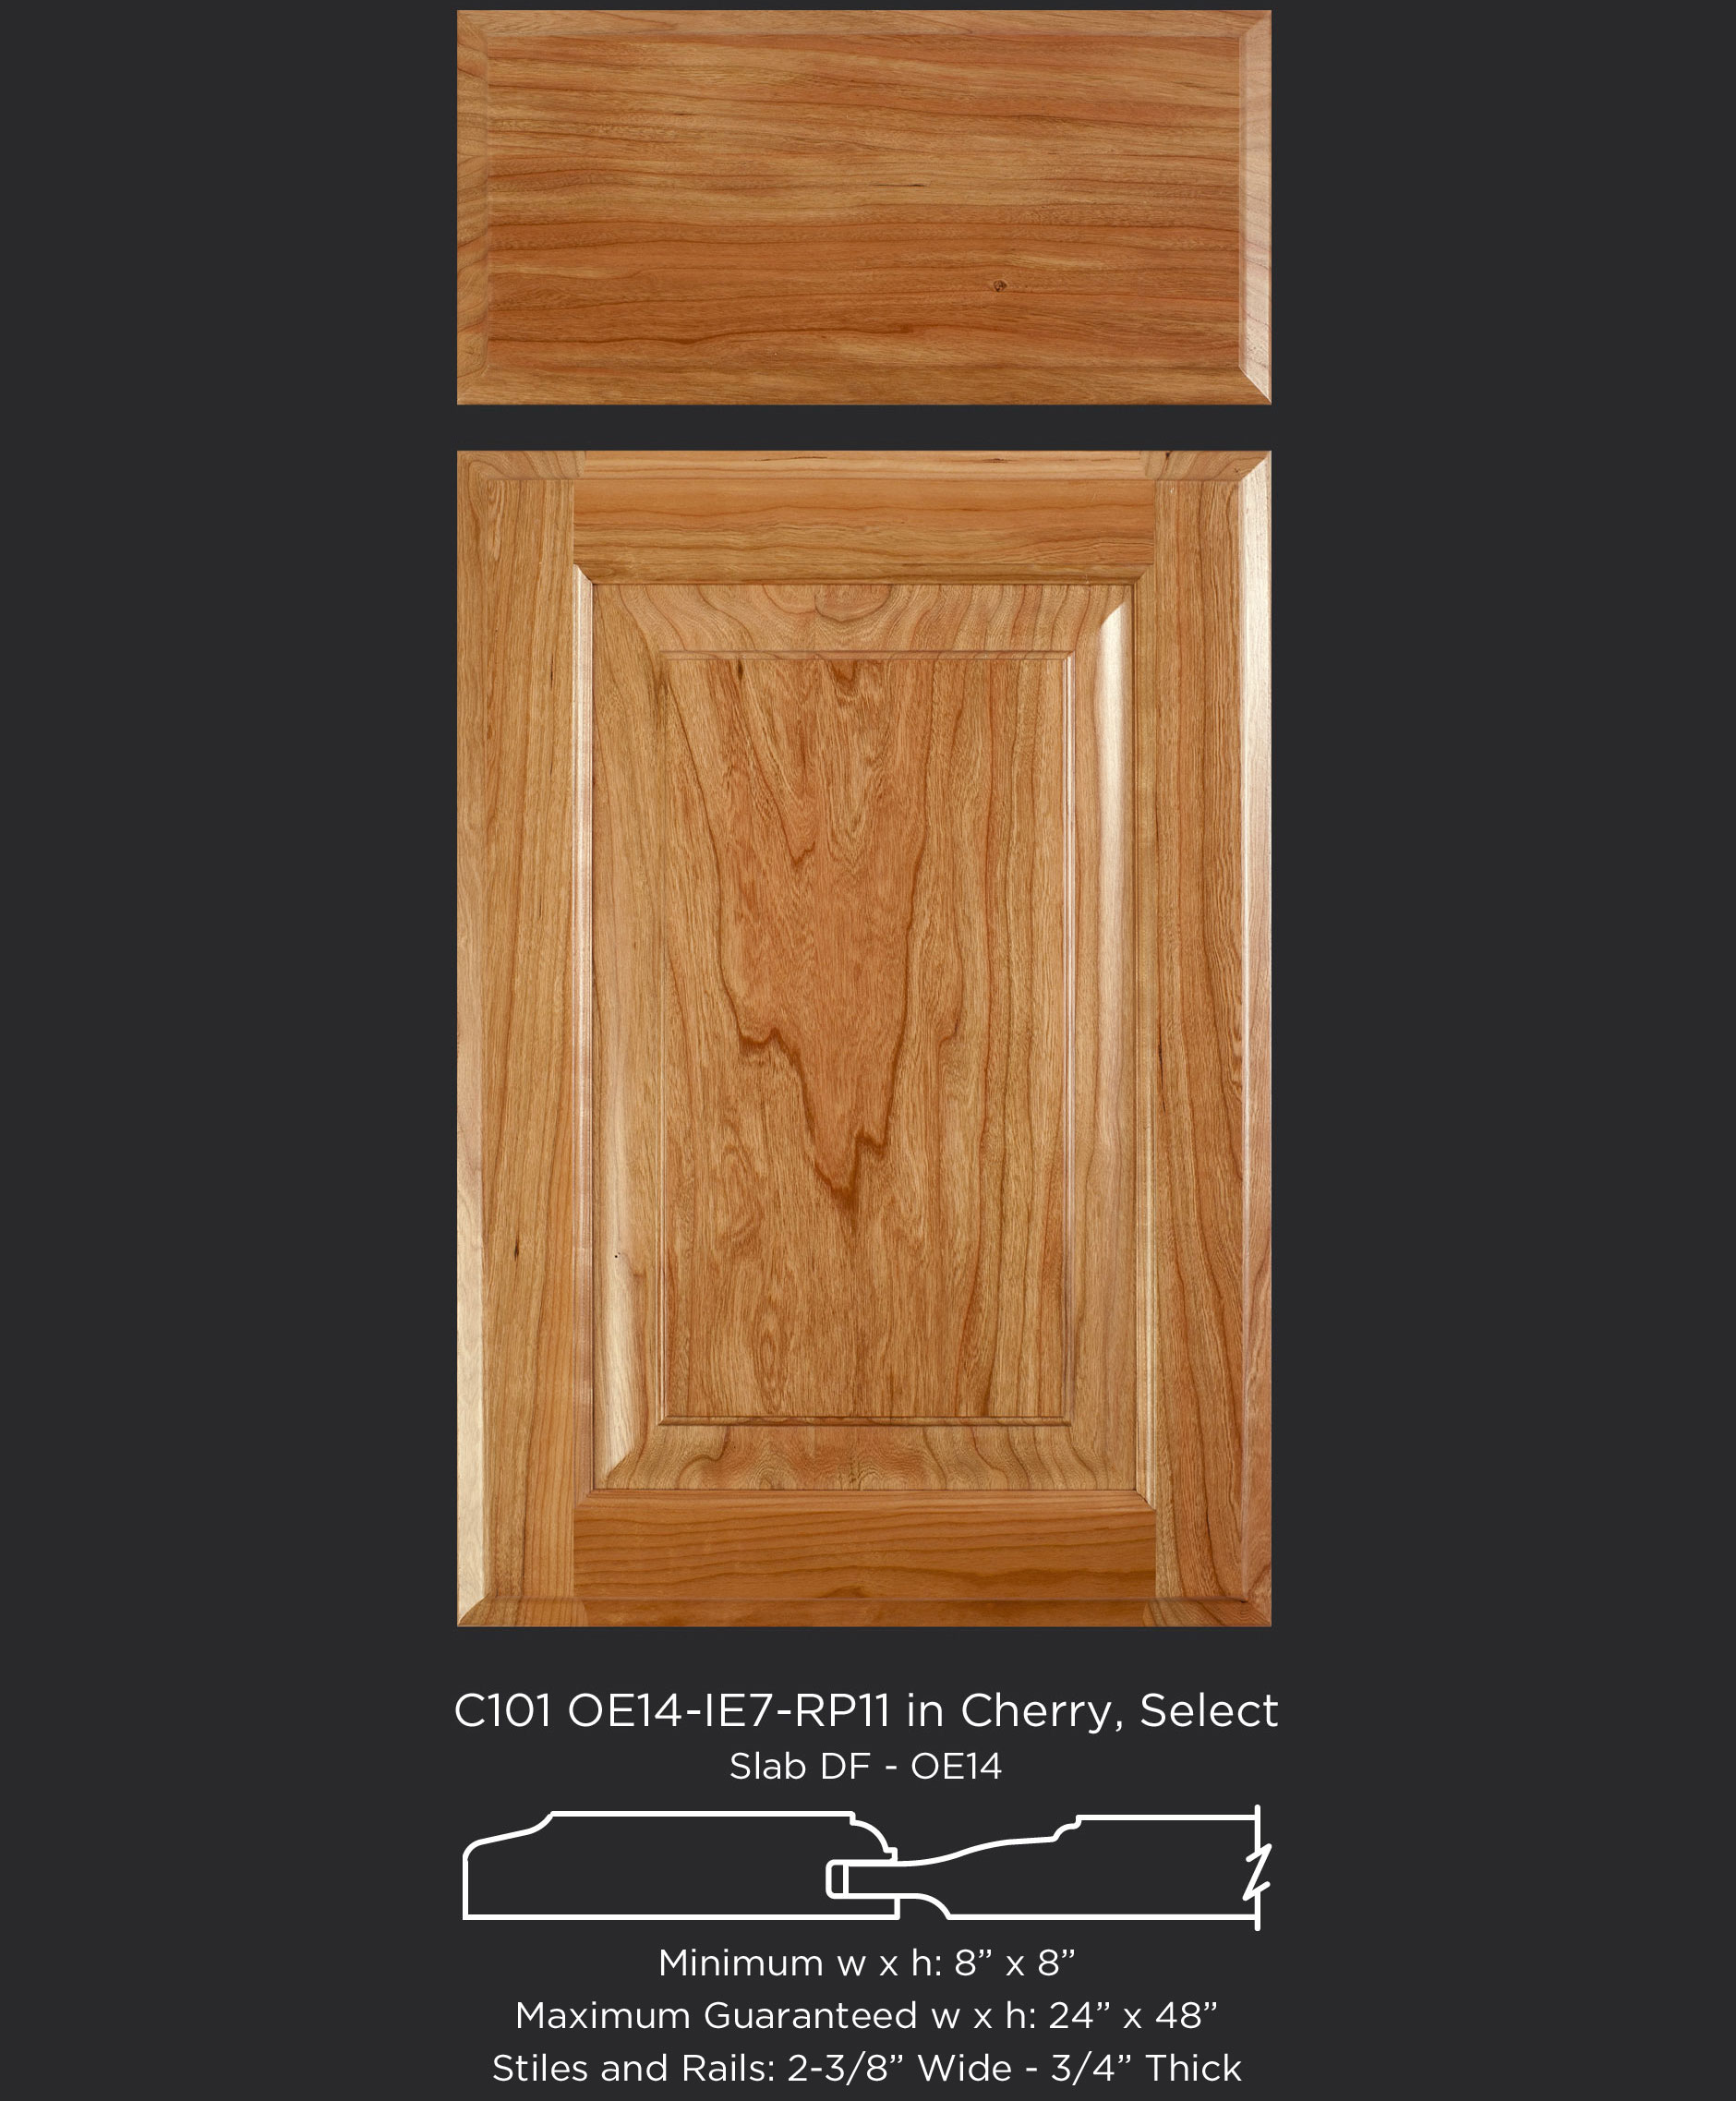 Cope and Stick Cabinet Door C101 OE14-IE7-RP11 Cherry, Select and slab drawer front with OE14